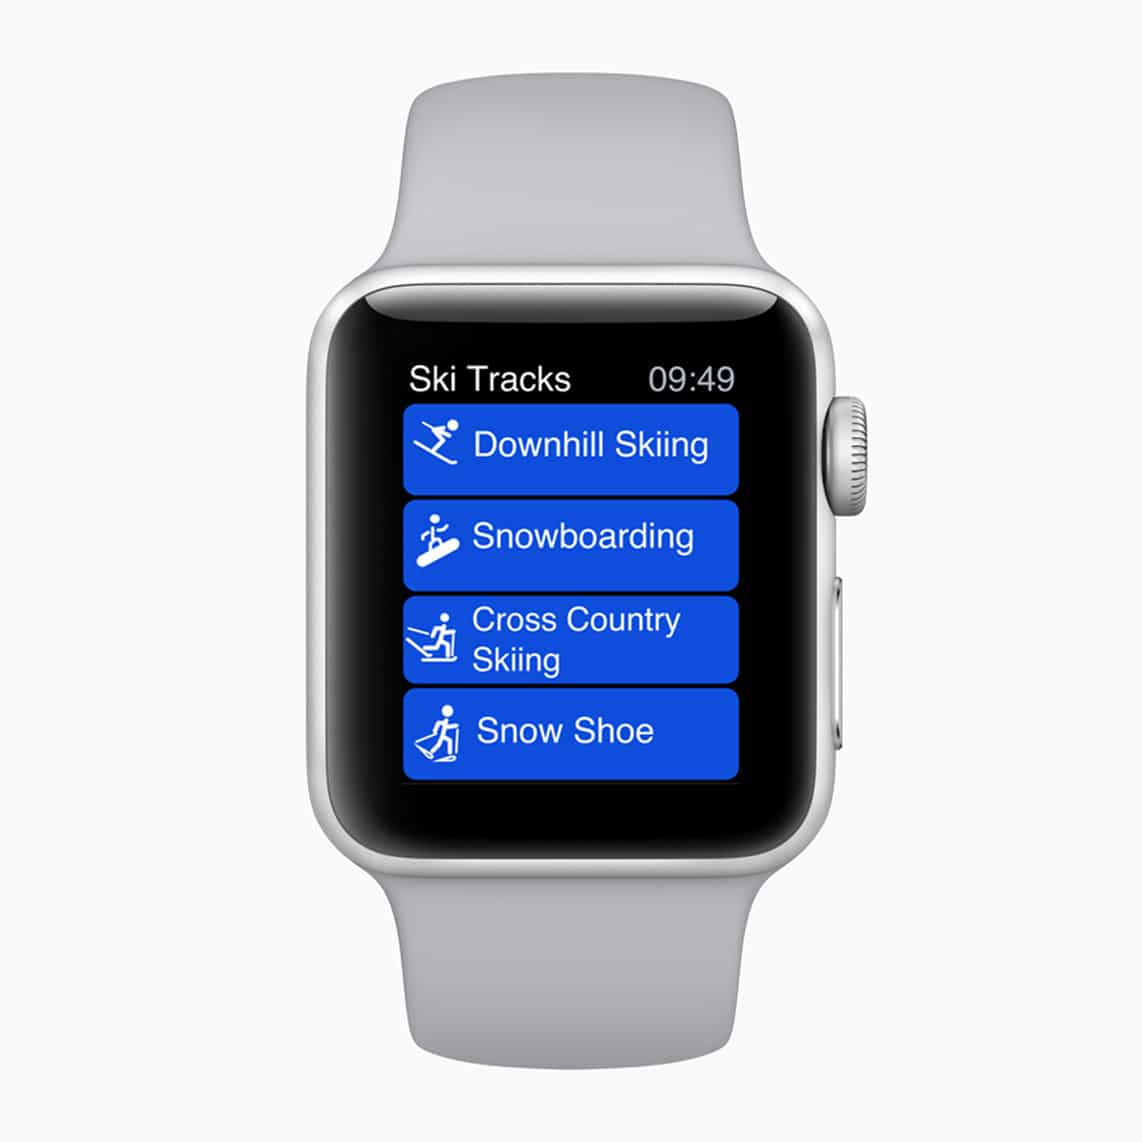 Alpine sports fans can now use the Apple Watch Series 3 to track their activity